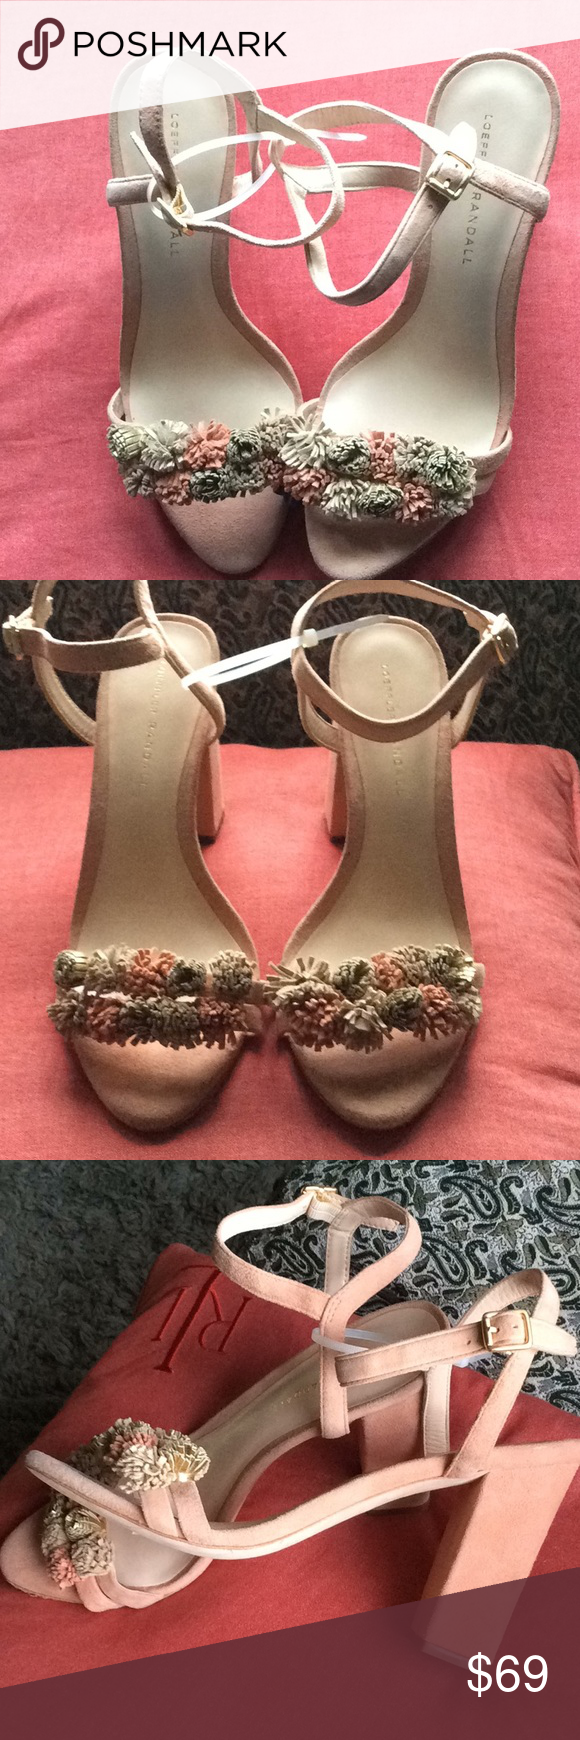 e385b96c42ba Loeffler Randall shoes size 8 NWOT These were possibly floor models at  Nordstrom. Gorgeous light